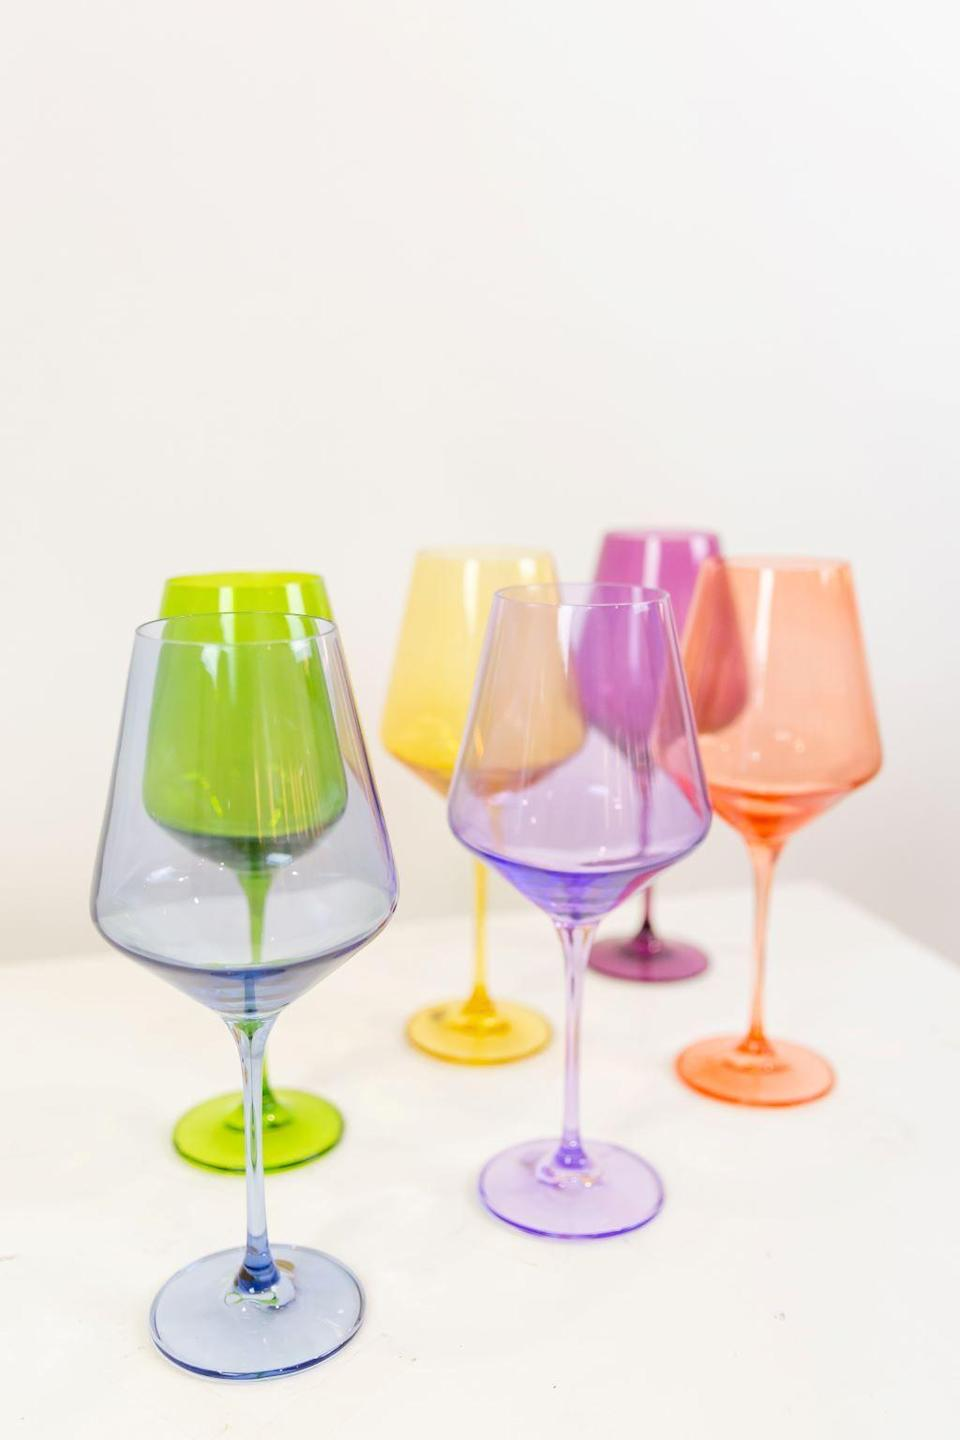 <p>For the person on your list who loves bright pops of color in their home decor, these hand-blown colored wine glasses (made by glass artisans in Poland) are sure to be a hit. With six wine glasses in the set, it's perfect for hosting a COVID-friendly micro-party. </p>